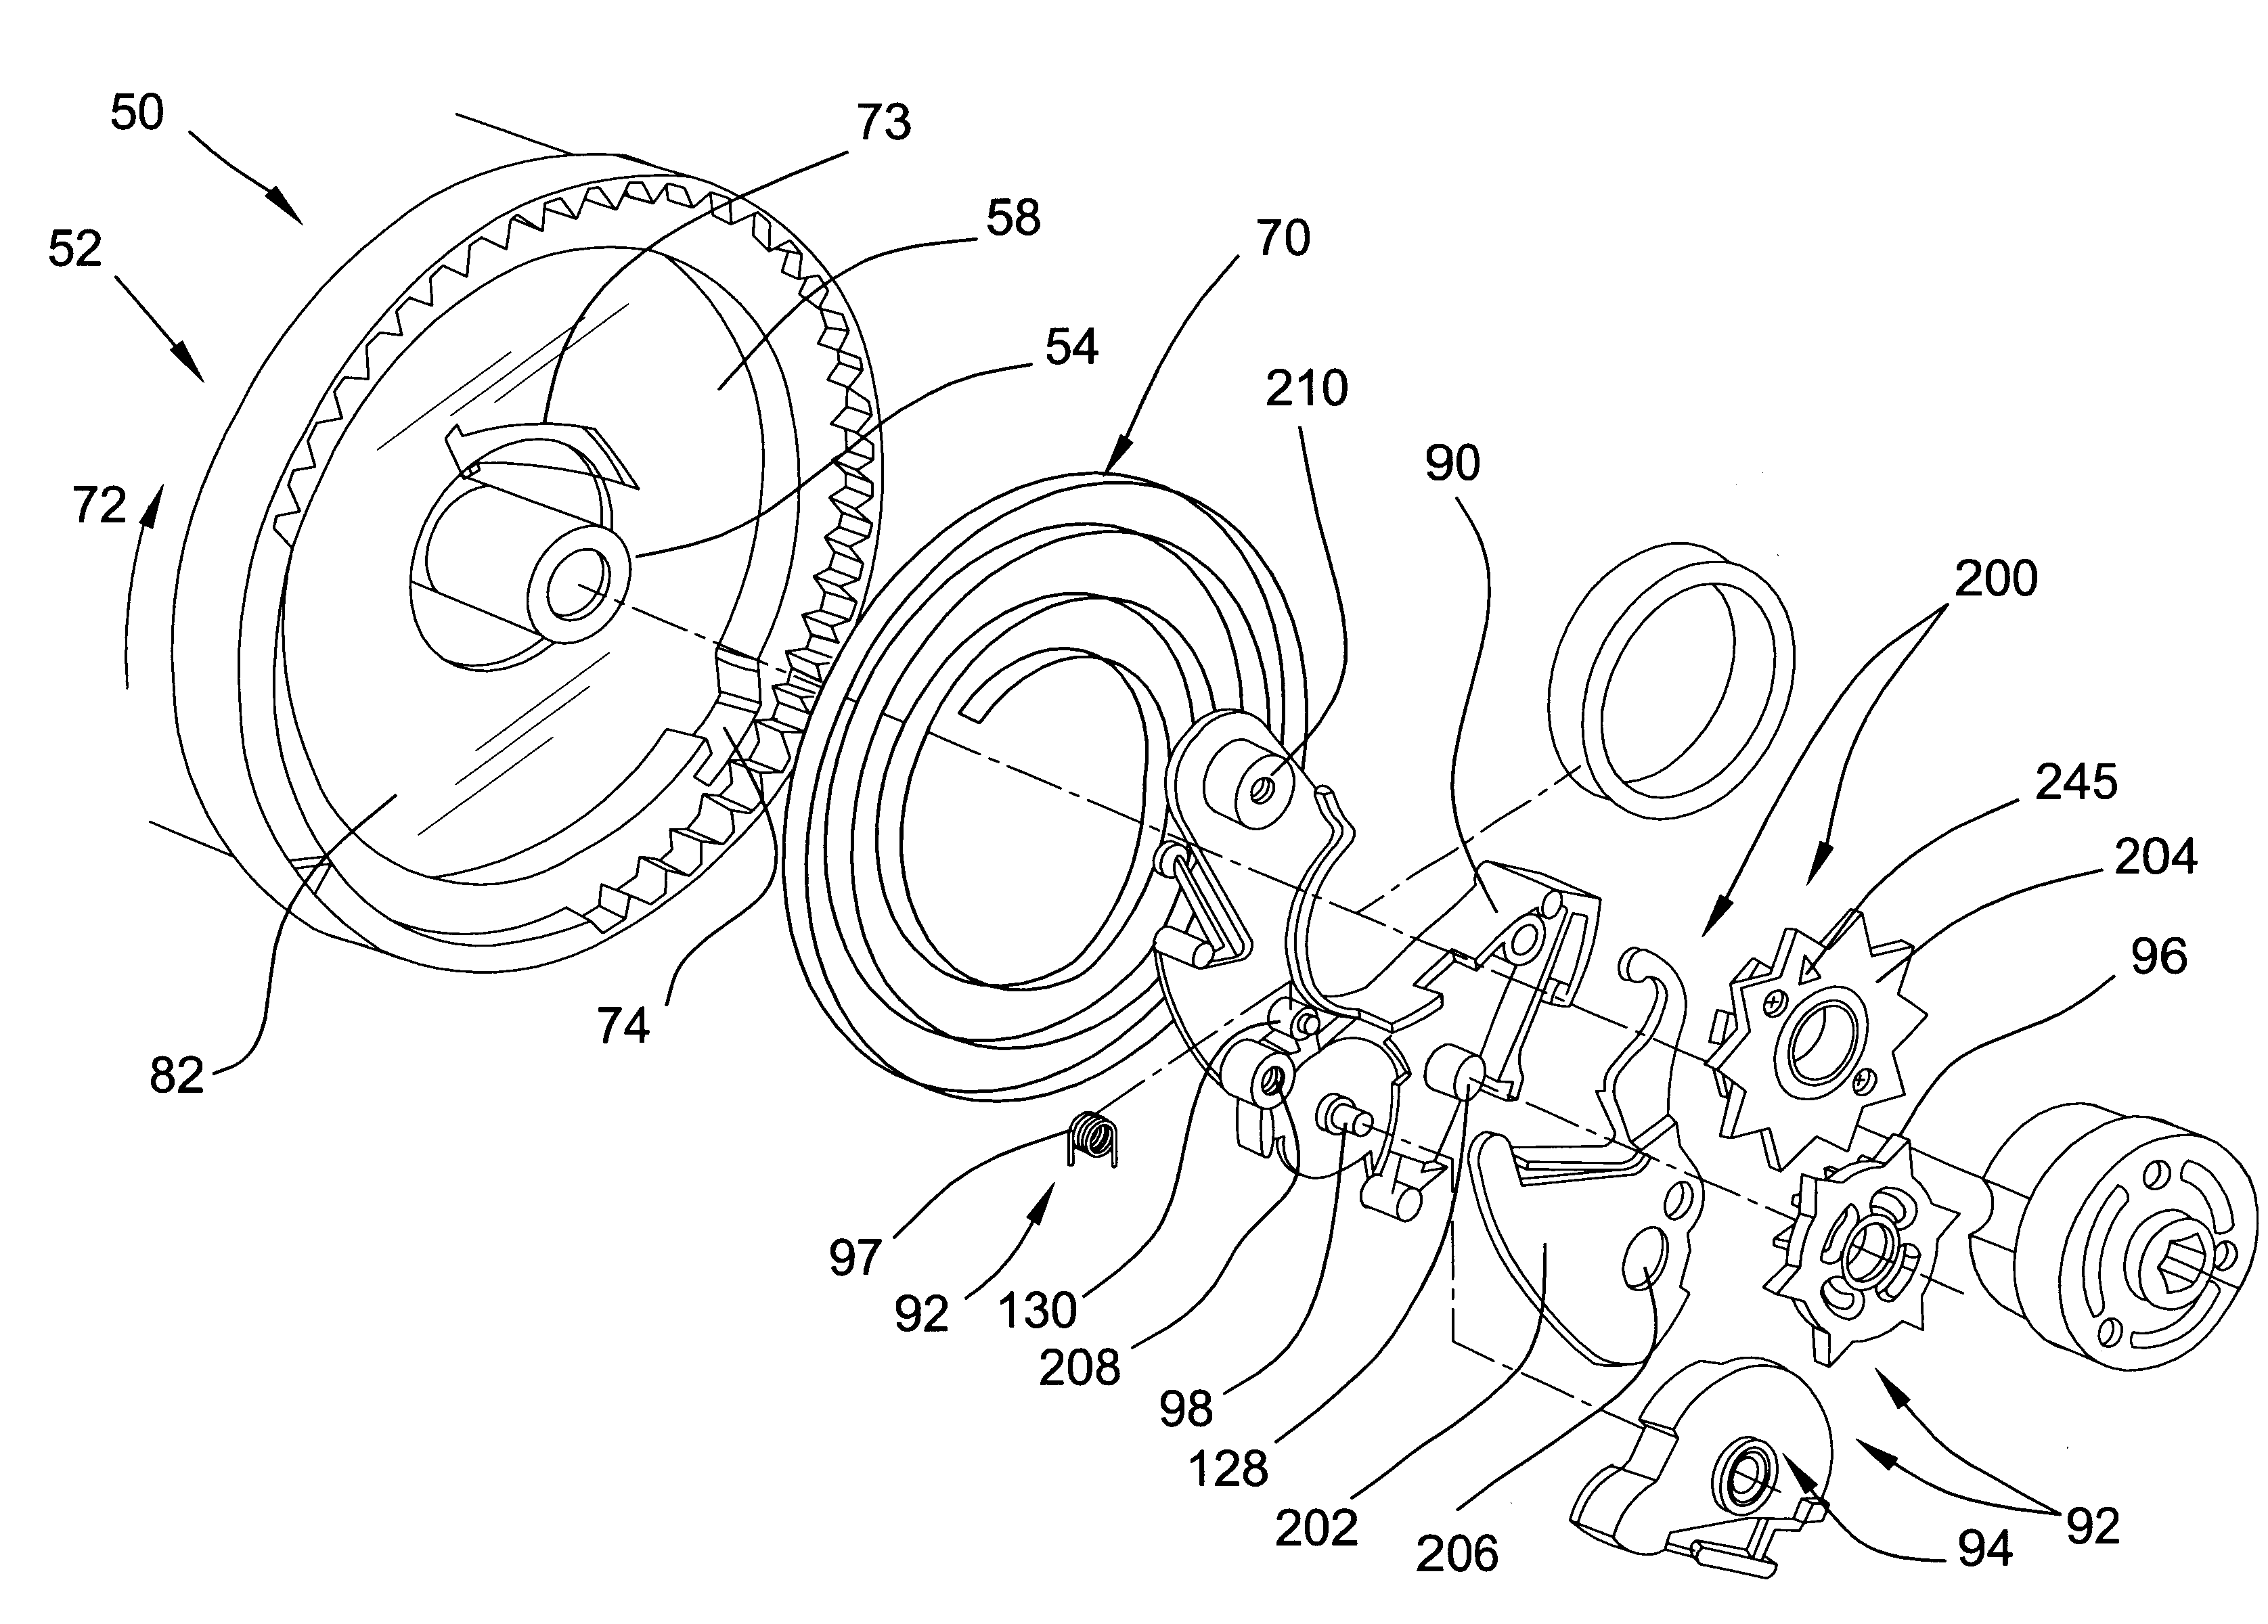 extension cord reel google patents on wiring code extension cords rh 149 28 127 251